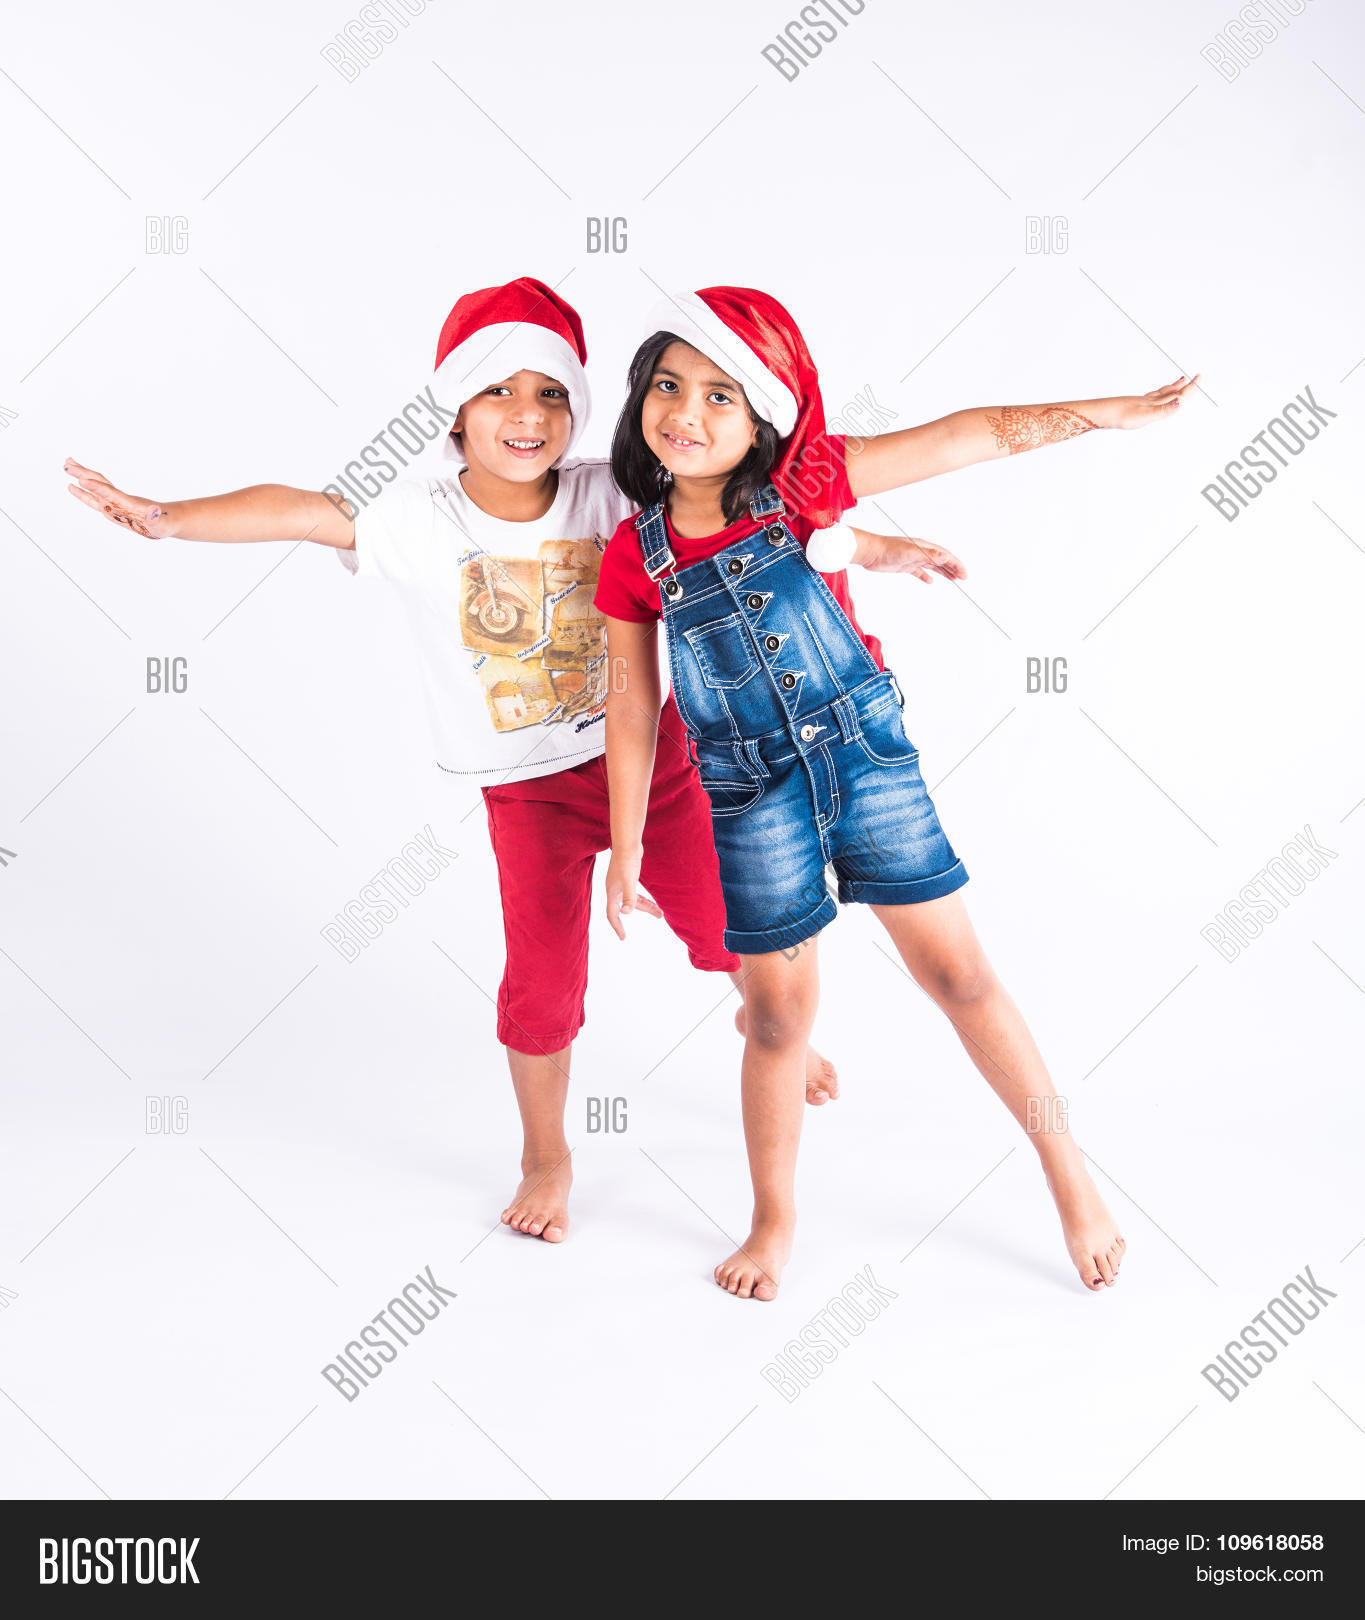 Indian Small Kids Image & Photo (Free Trial) | Bigstock